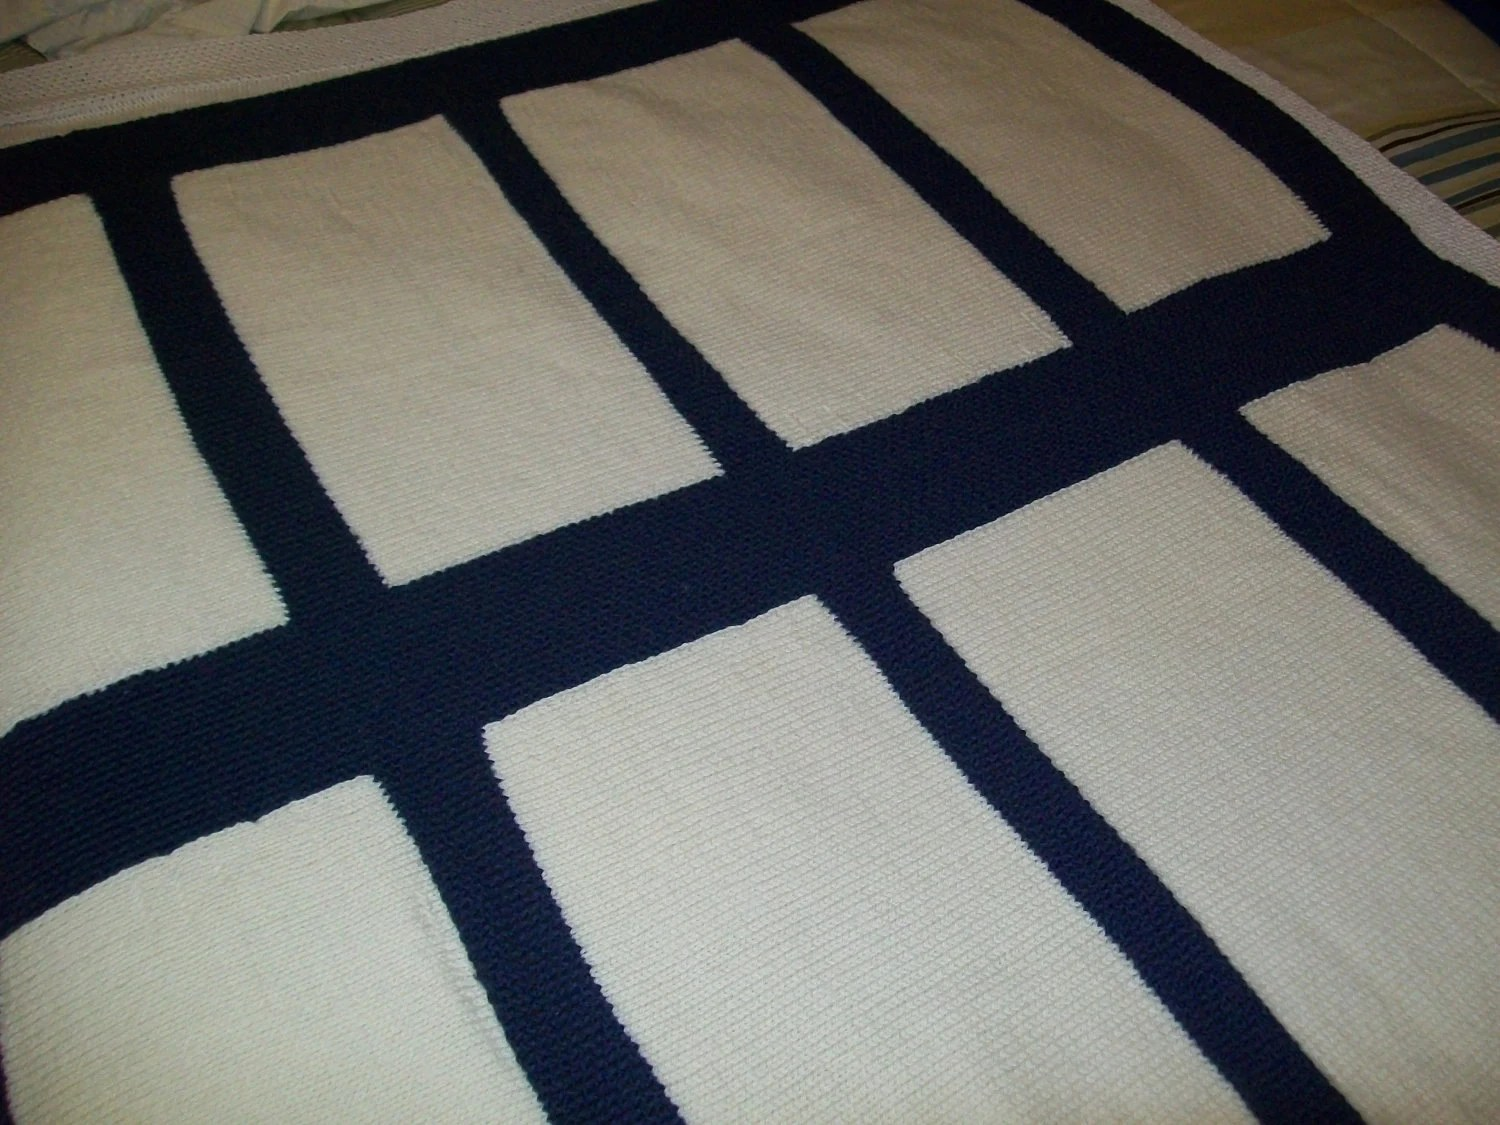 100% Wool Lap Blanket. Navy Blue and White Pattern. Stockinette Stitch Thow .